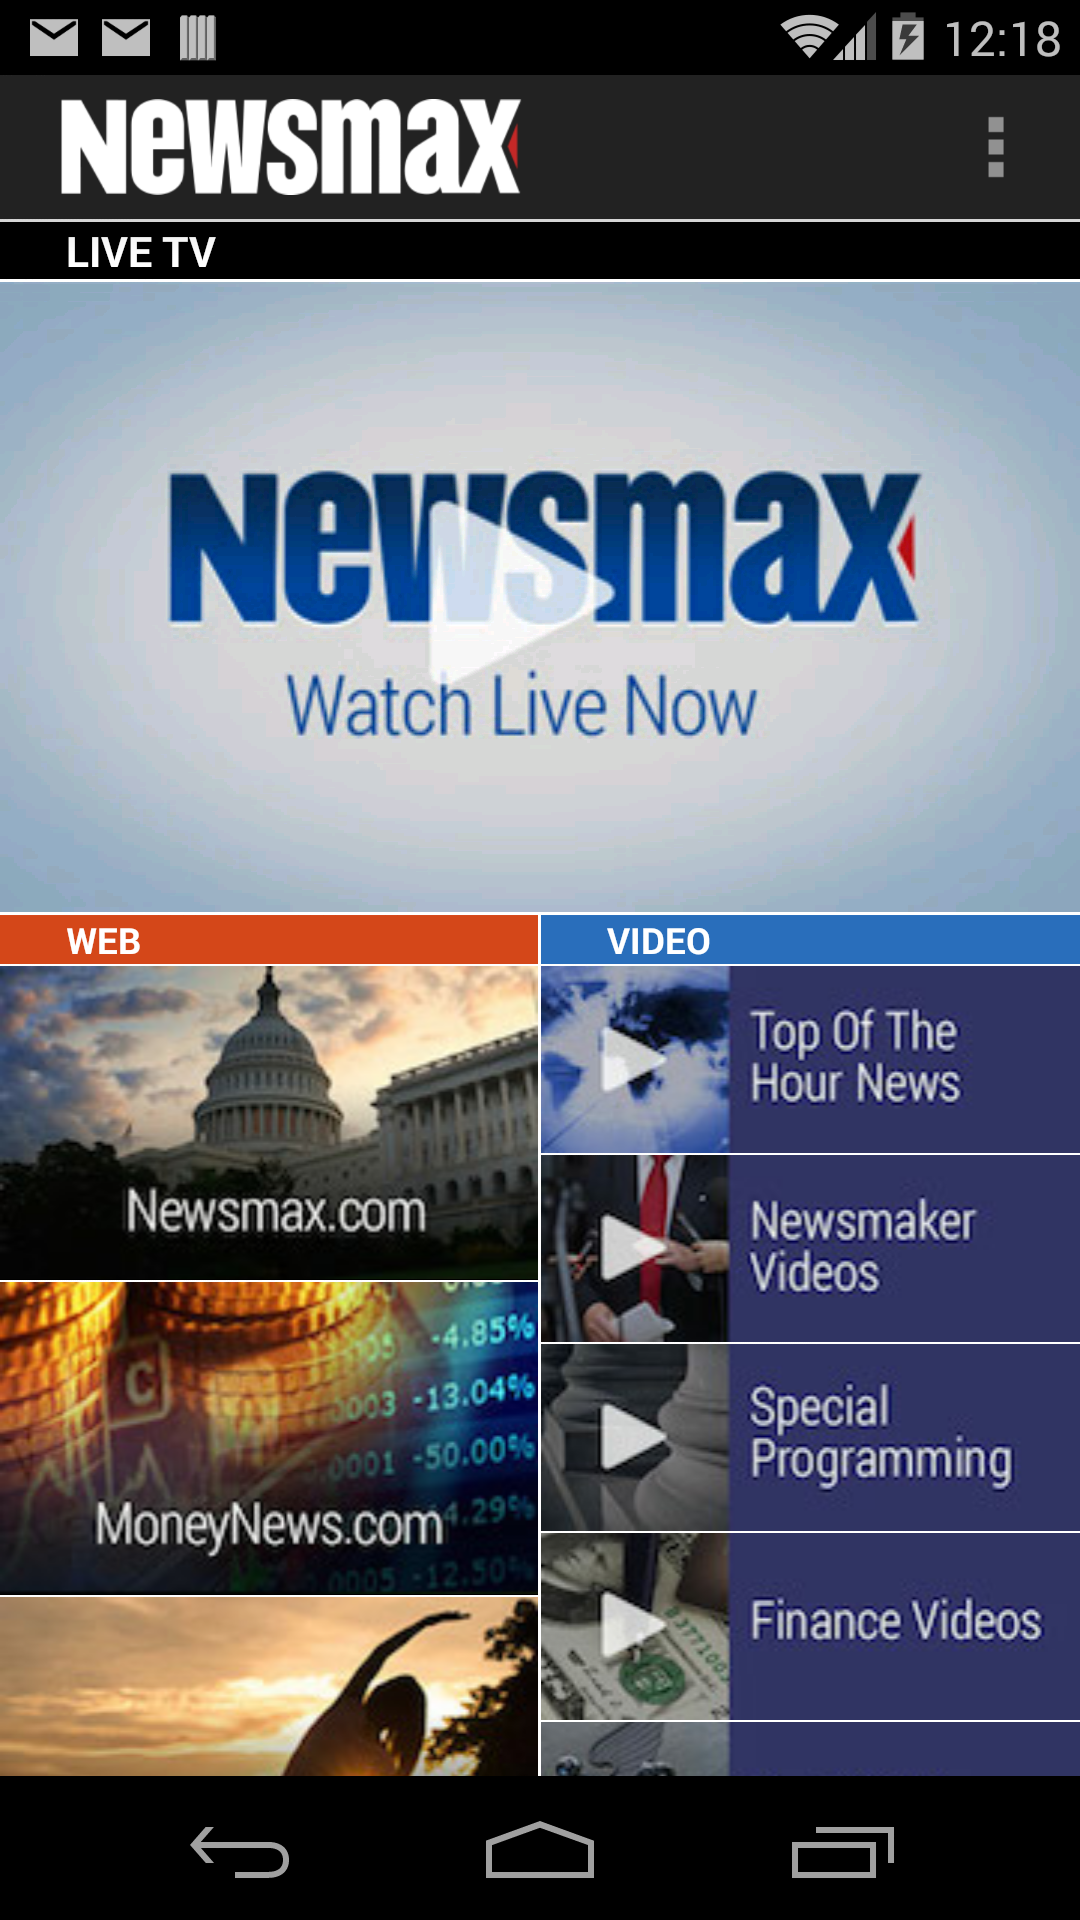 Newsmax Tv Amp Web Amazon Com Au Appstore For Android